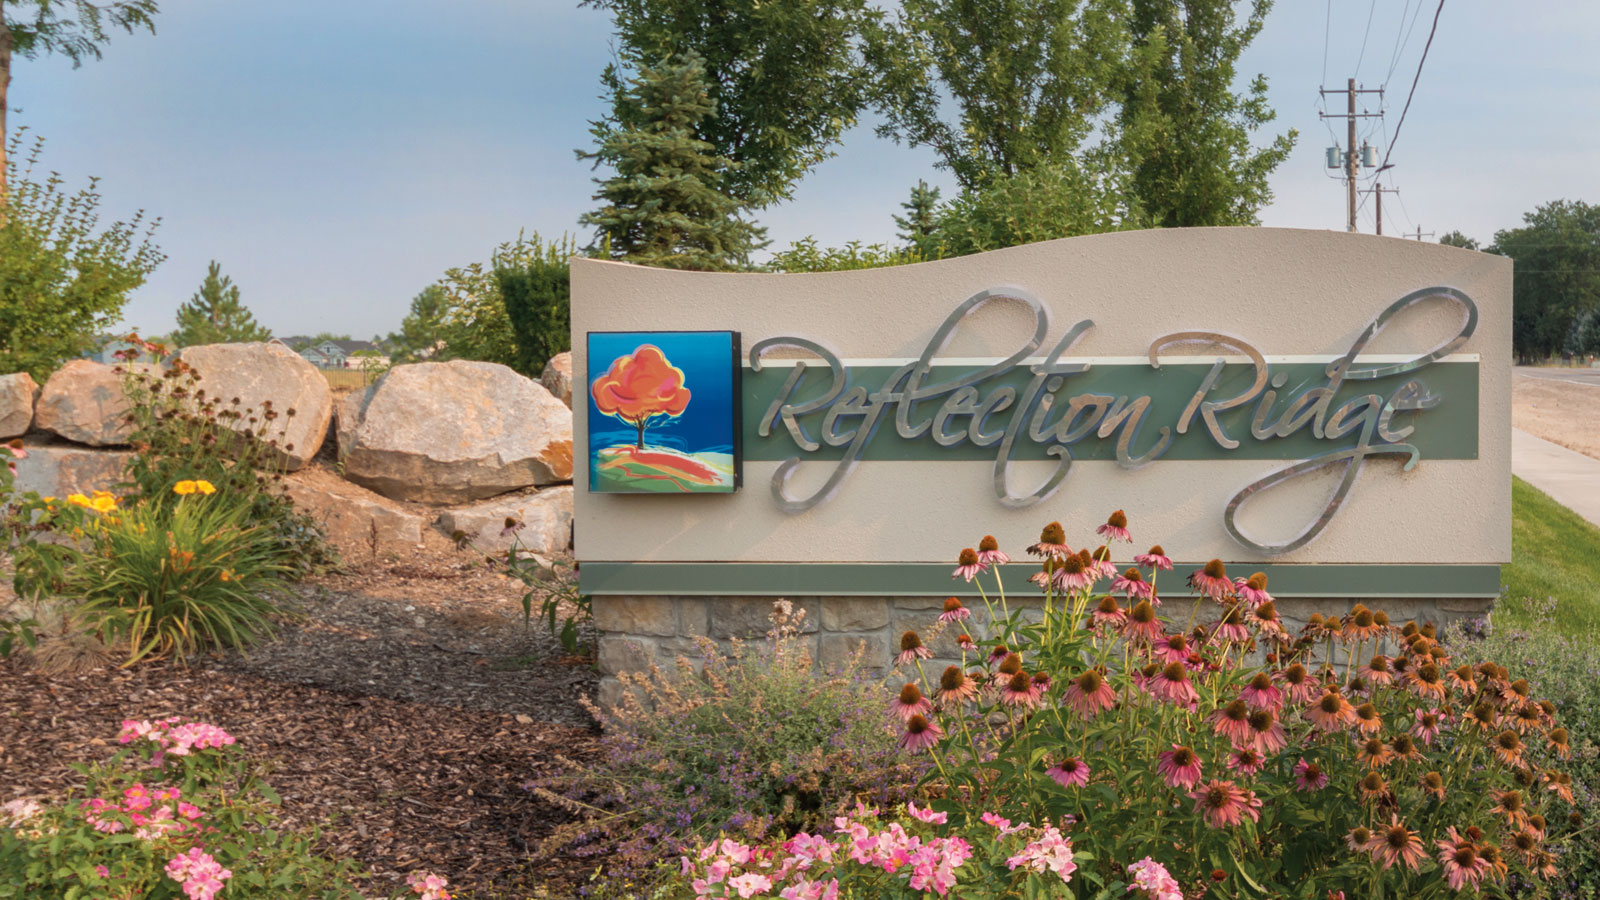 Refelction Ridge Meridian Idaho